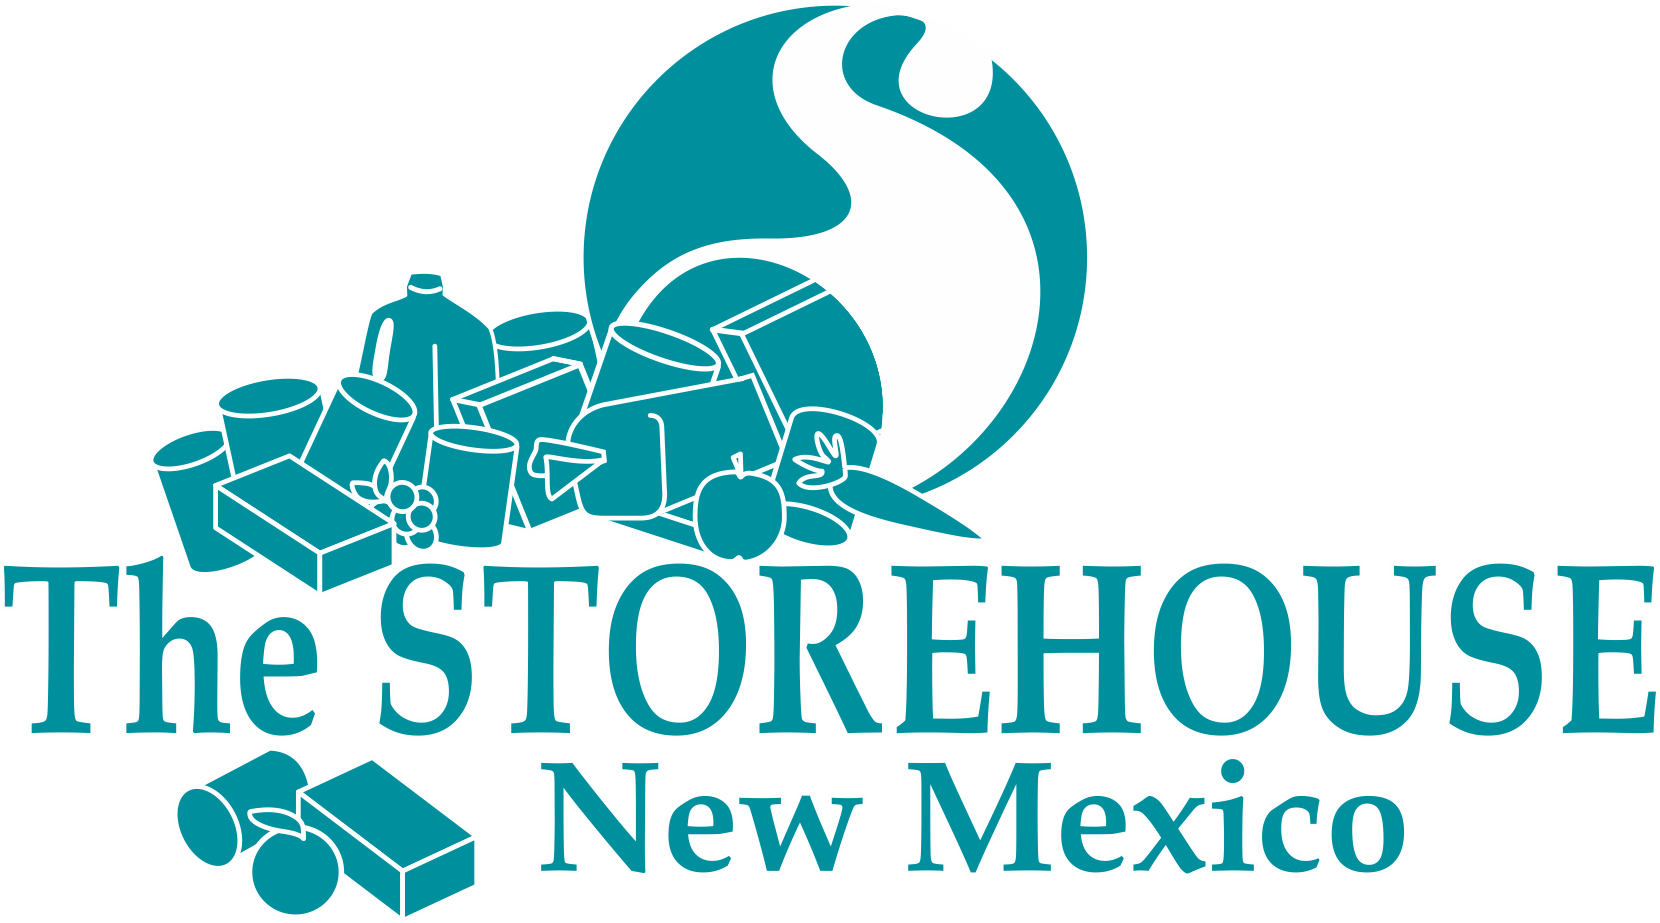 The Storehouse of New Mexico